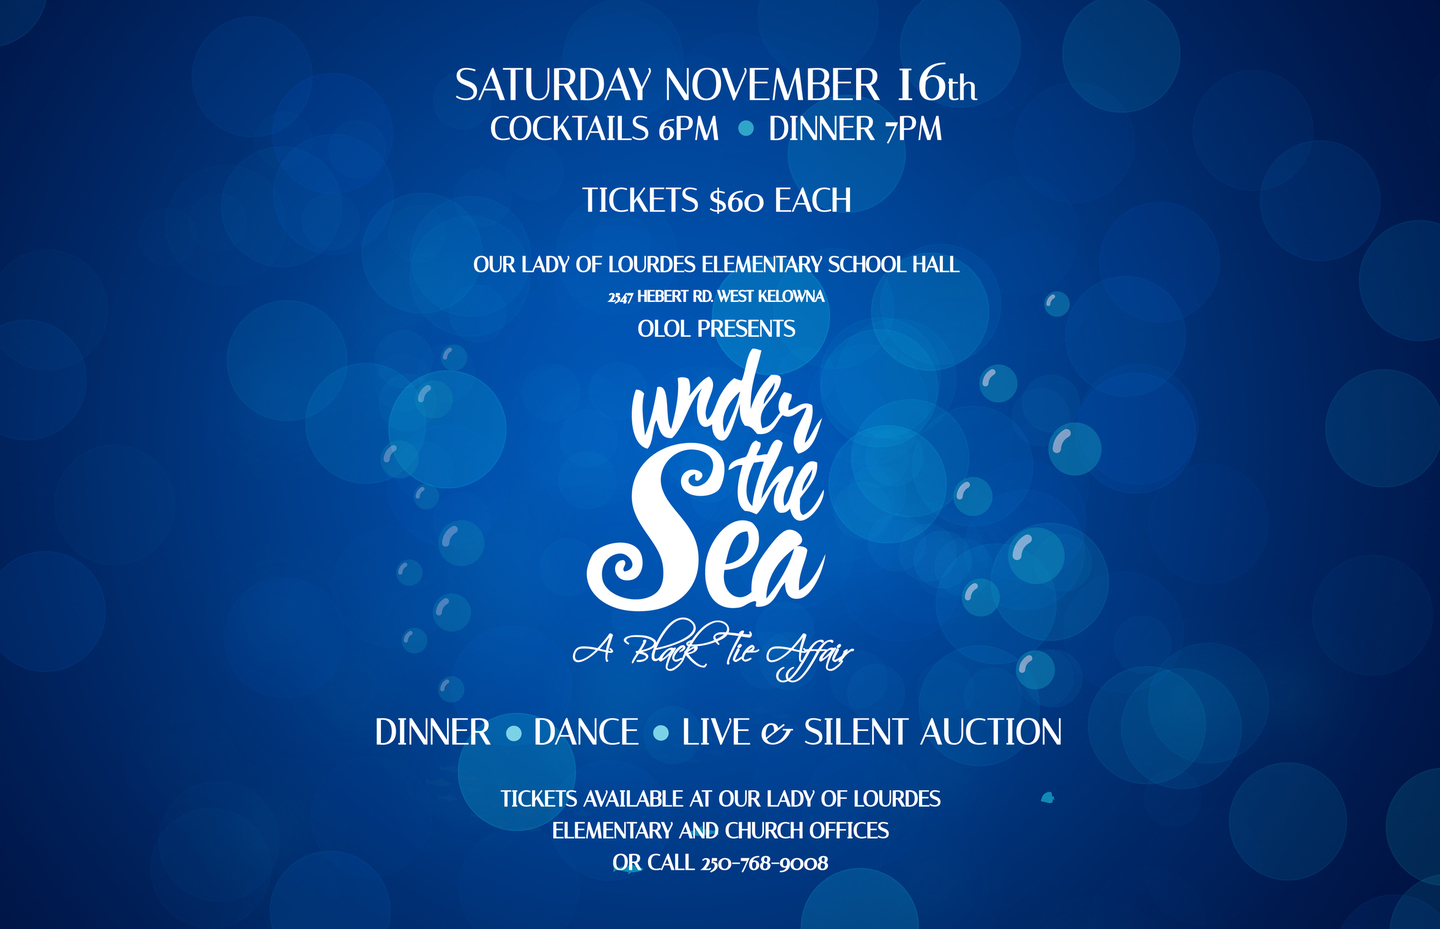 Under the Sea- The Annual Black Tie Gala and Fundraiser